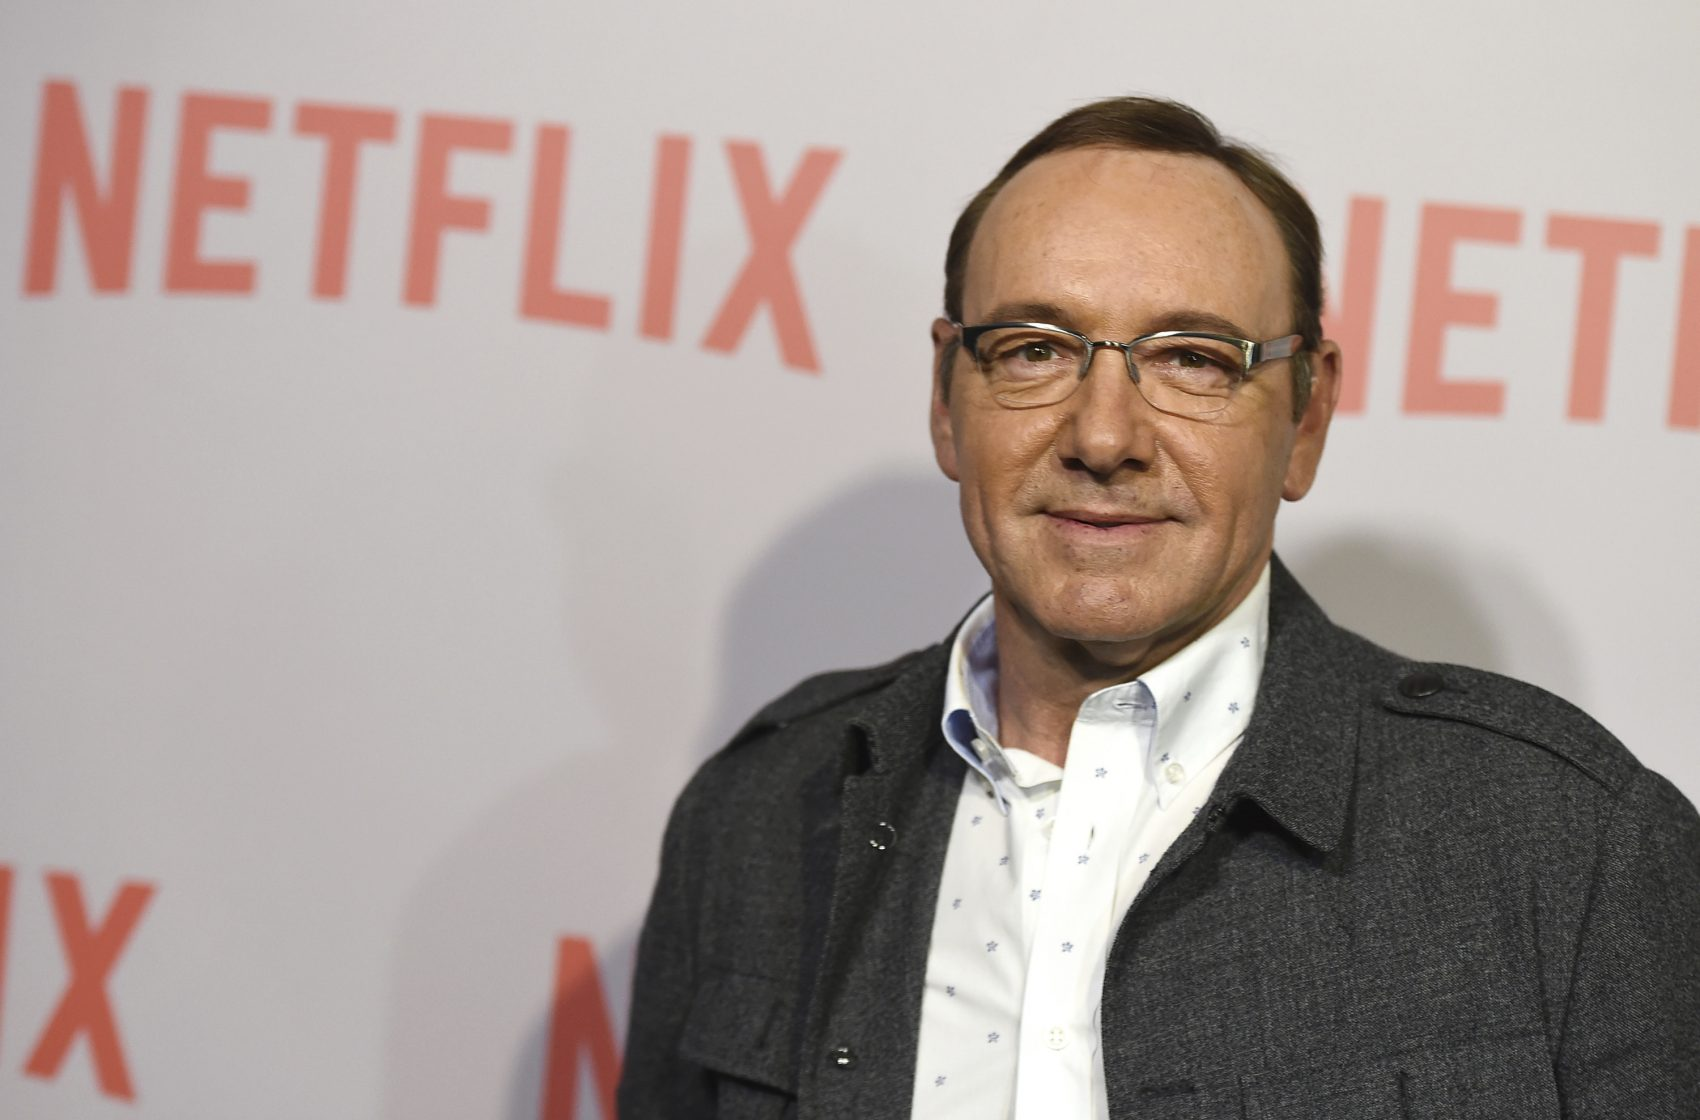 Former Boston News Anchor Accuses Kevin Spacey Of Sexually